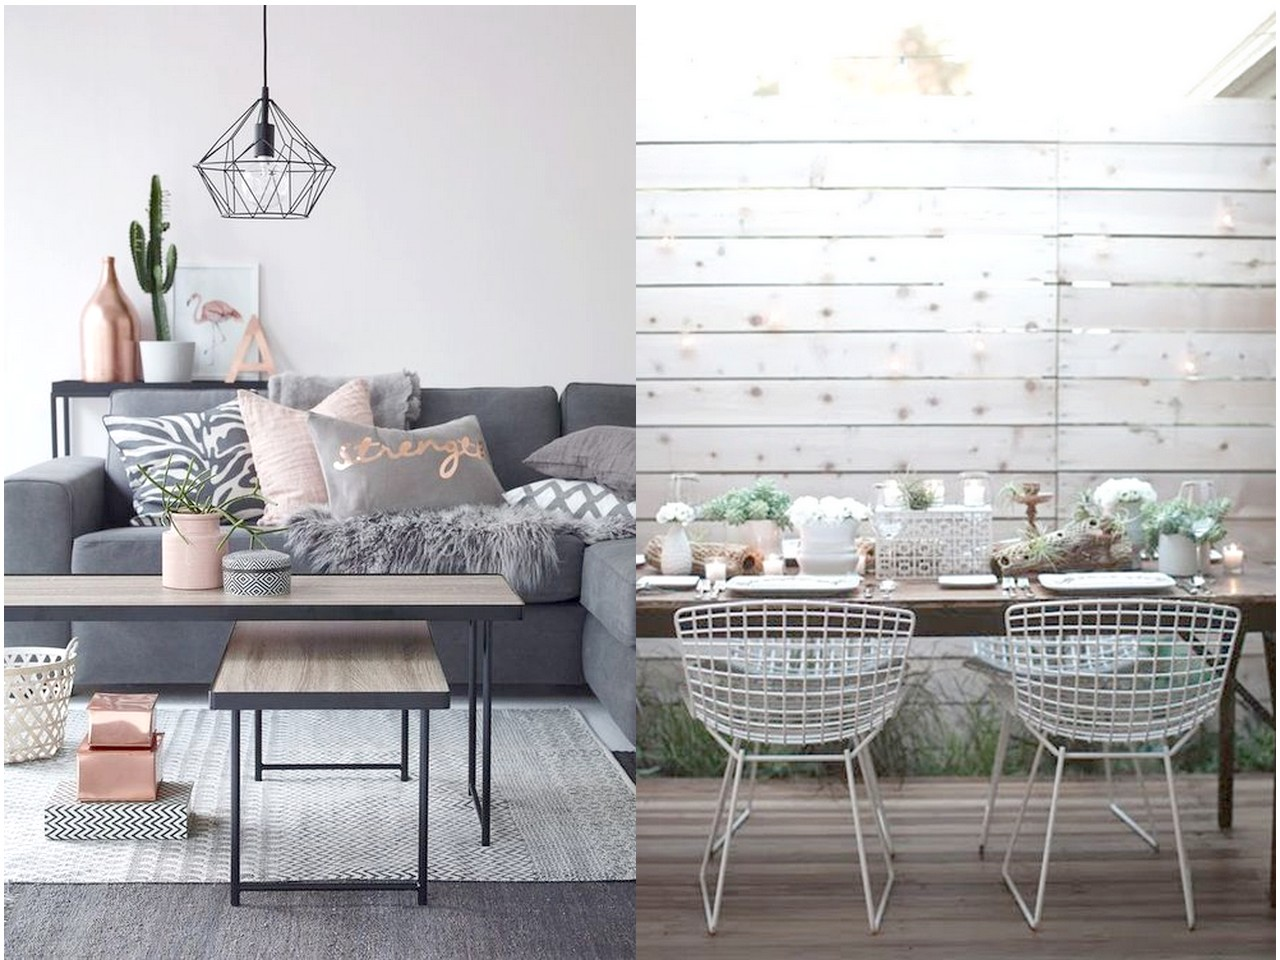 Tendencias De Decoracion De Interiores 2016 Tendencias 2016 2017 Decorar Con Metal